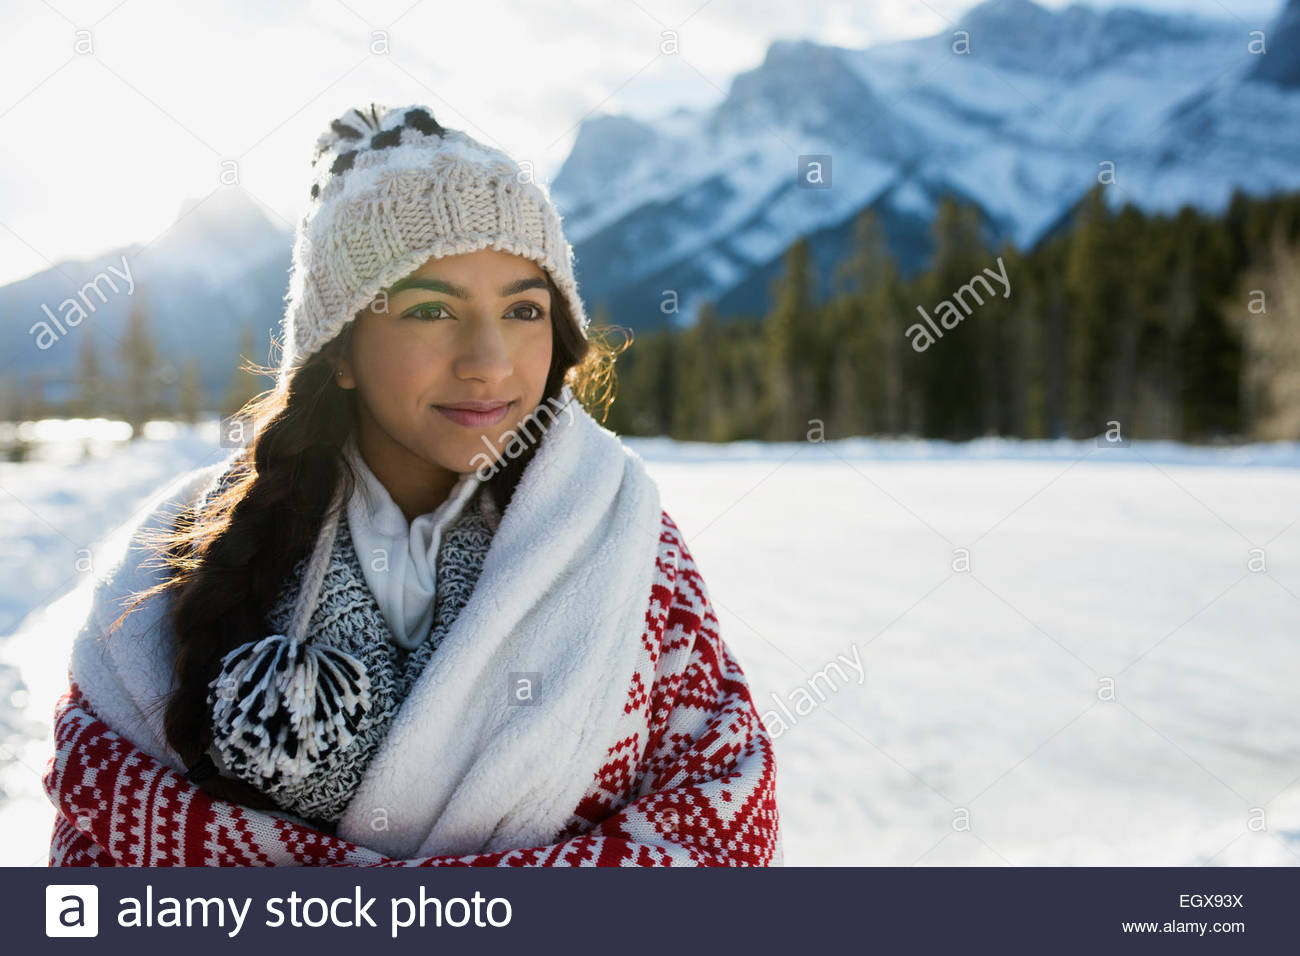 Smiling teenage girl in snowy field - Stock Image